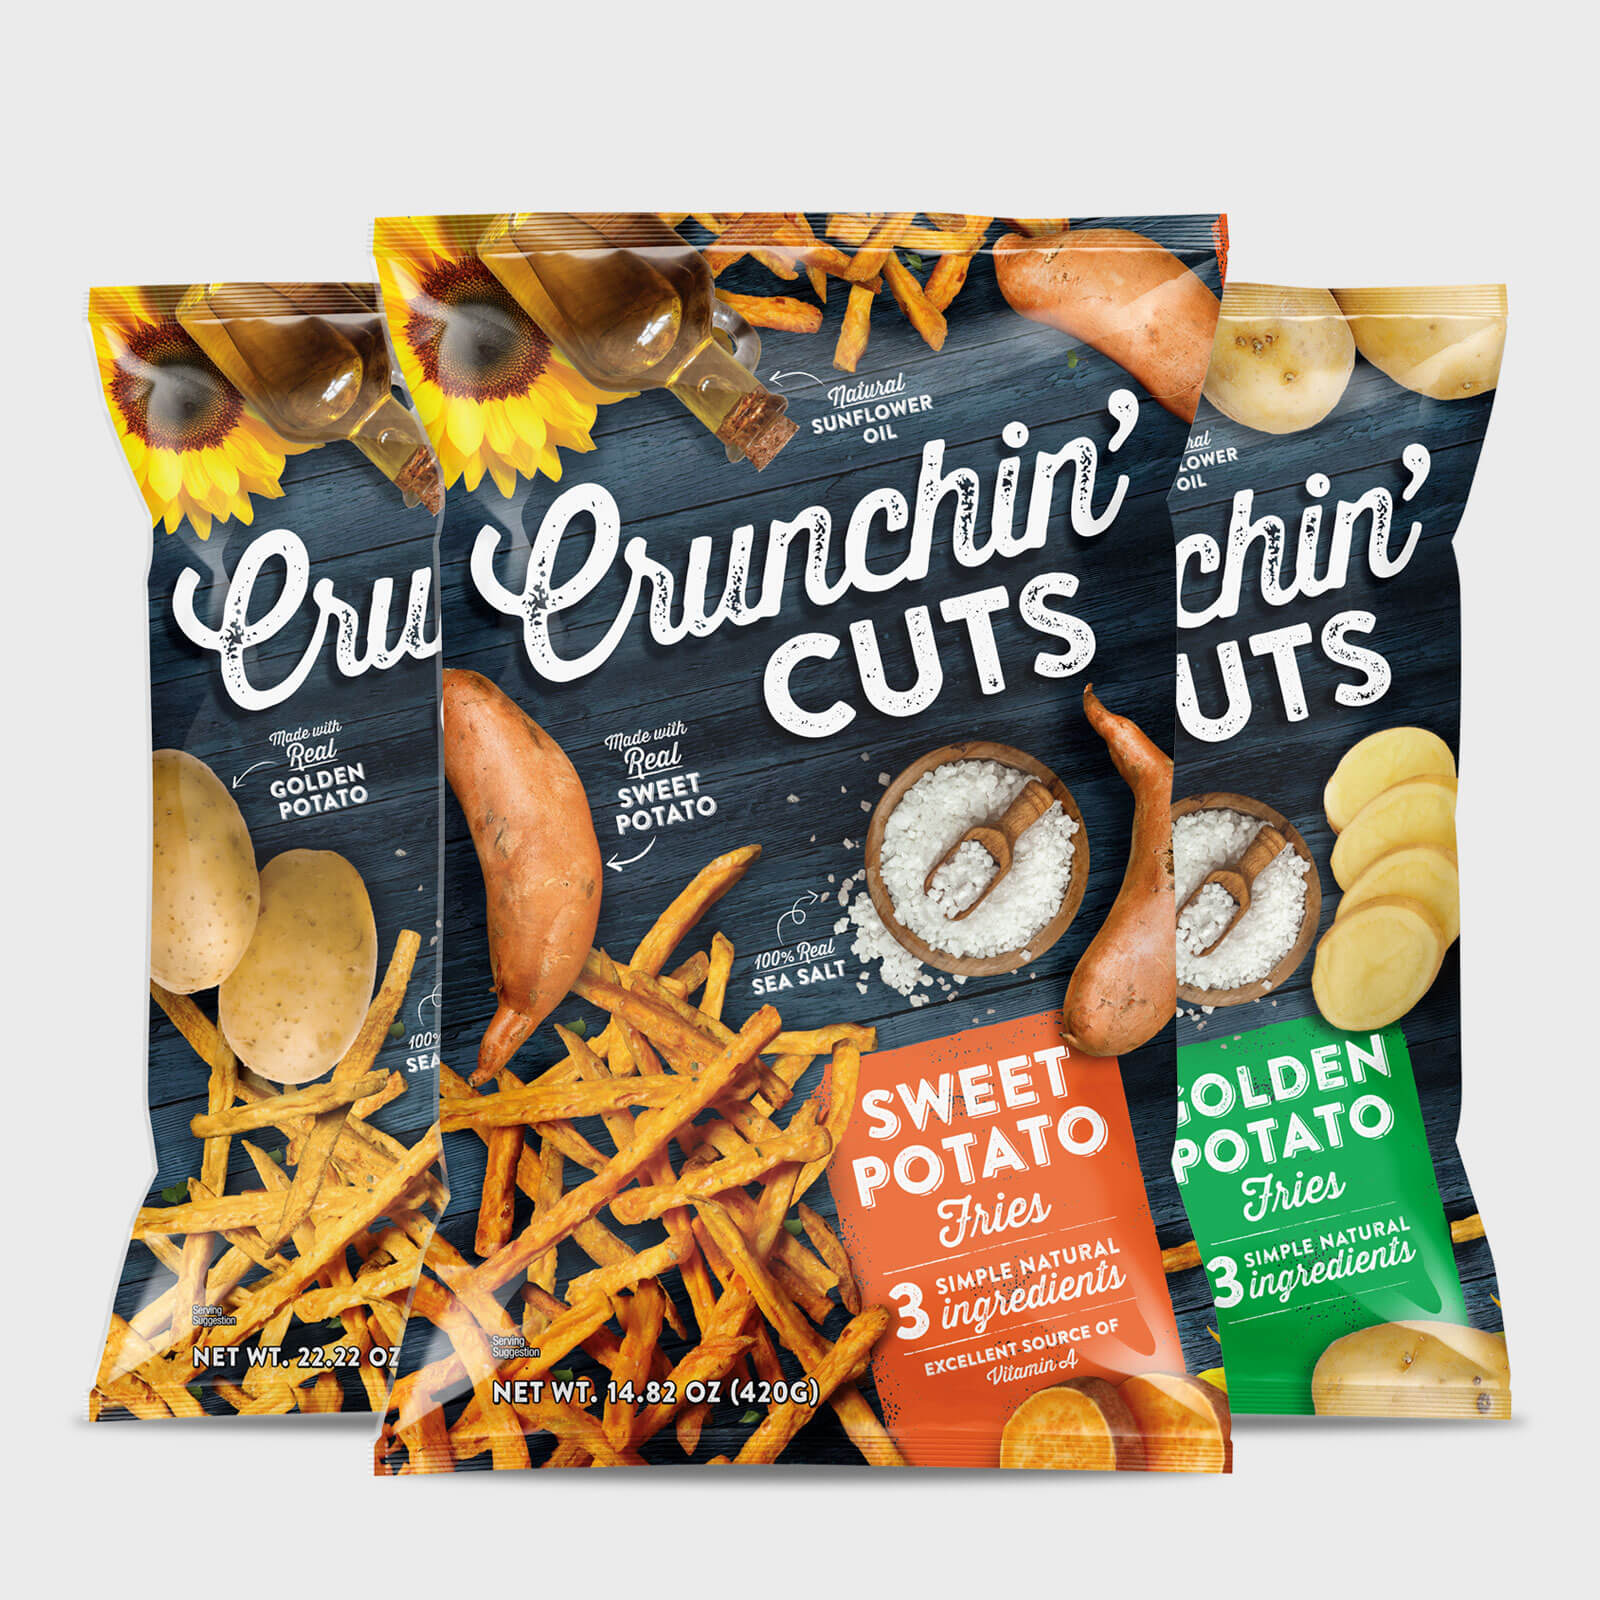 Crunchin Cuts for Hello Delicious - Snack Food Packaging That Sells